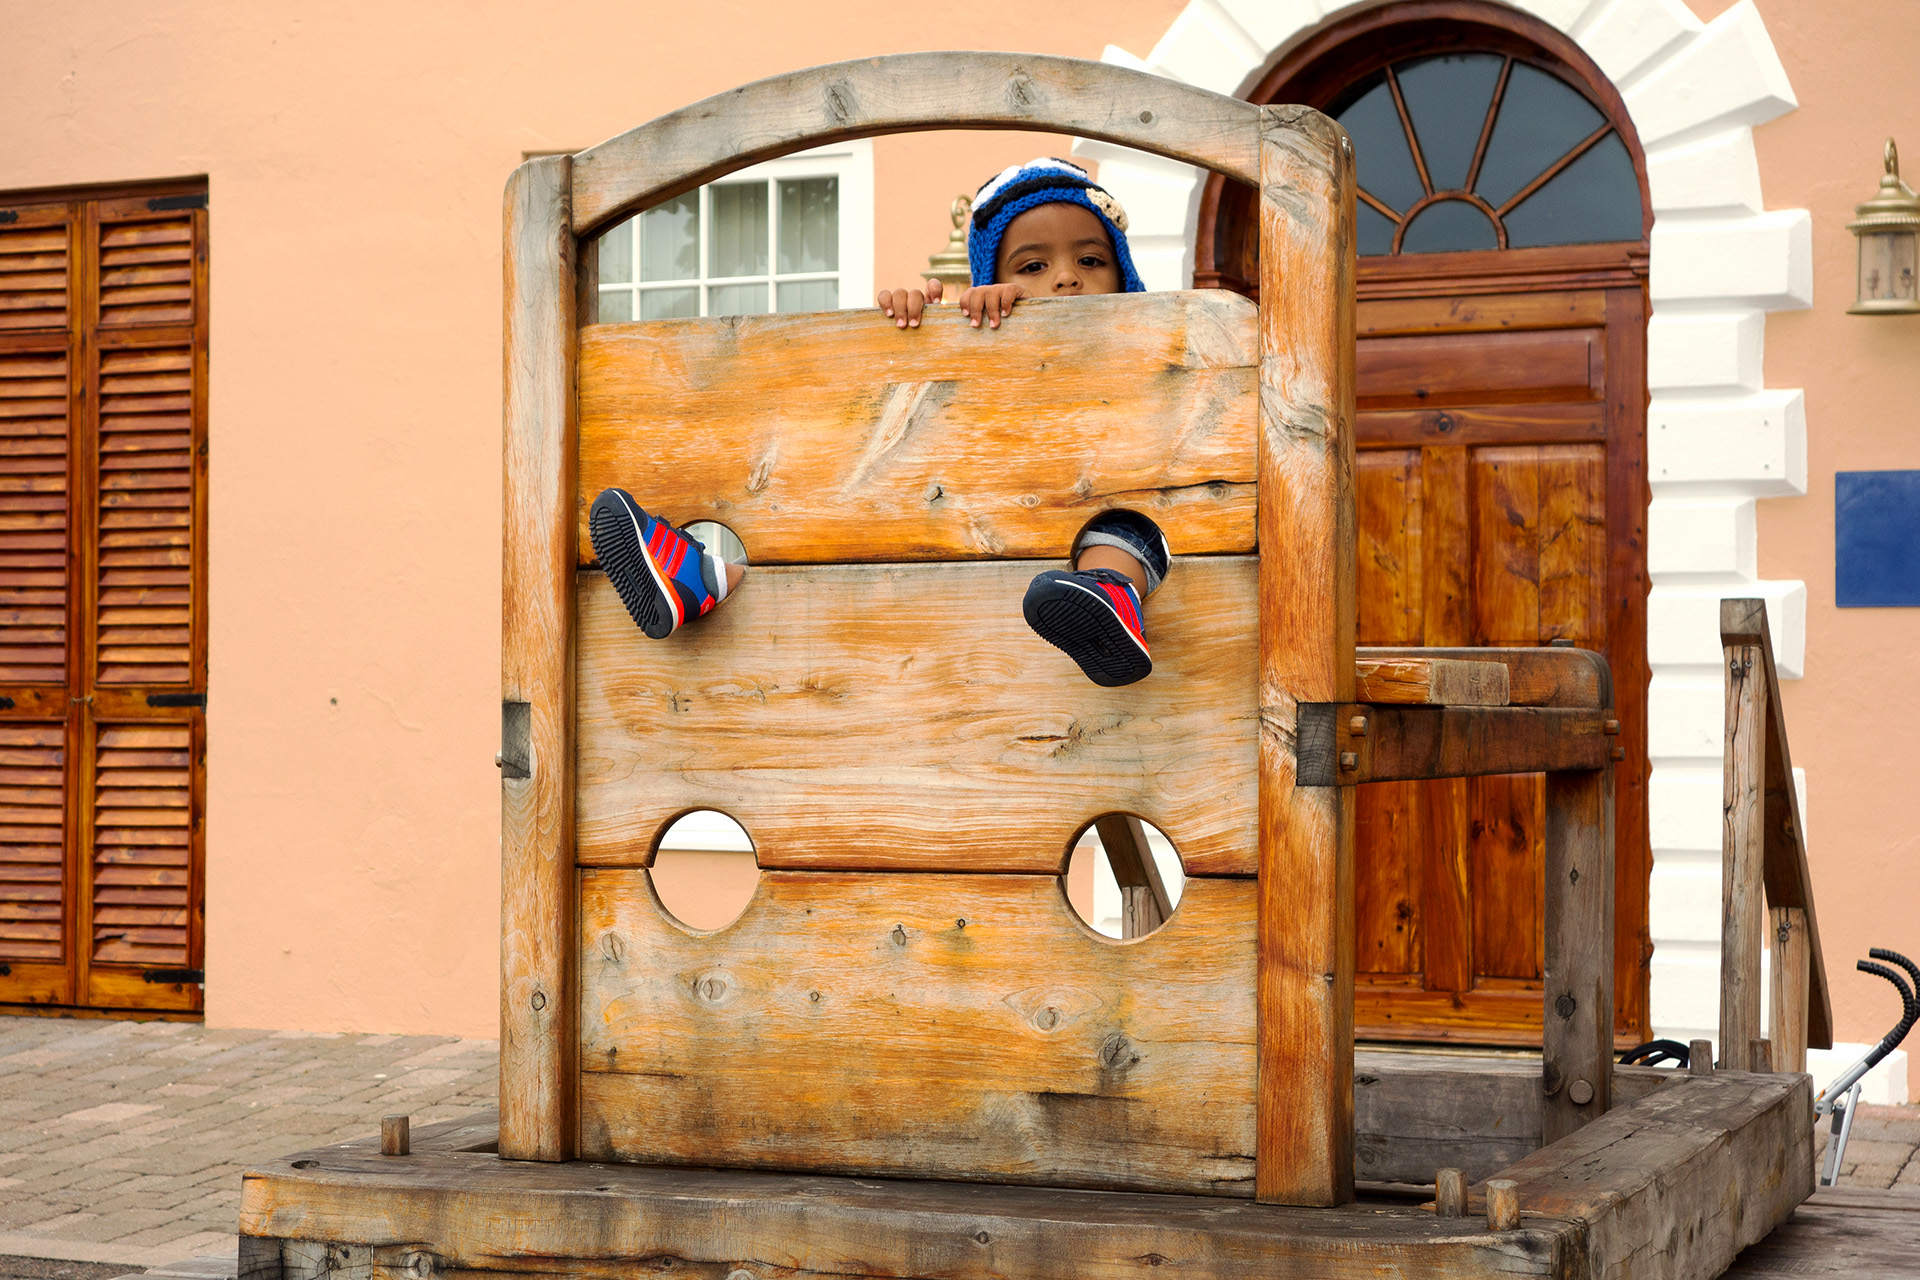 Super cute kid doing time in the stocks.